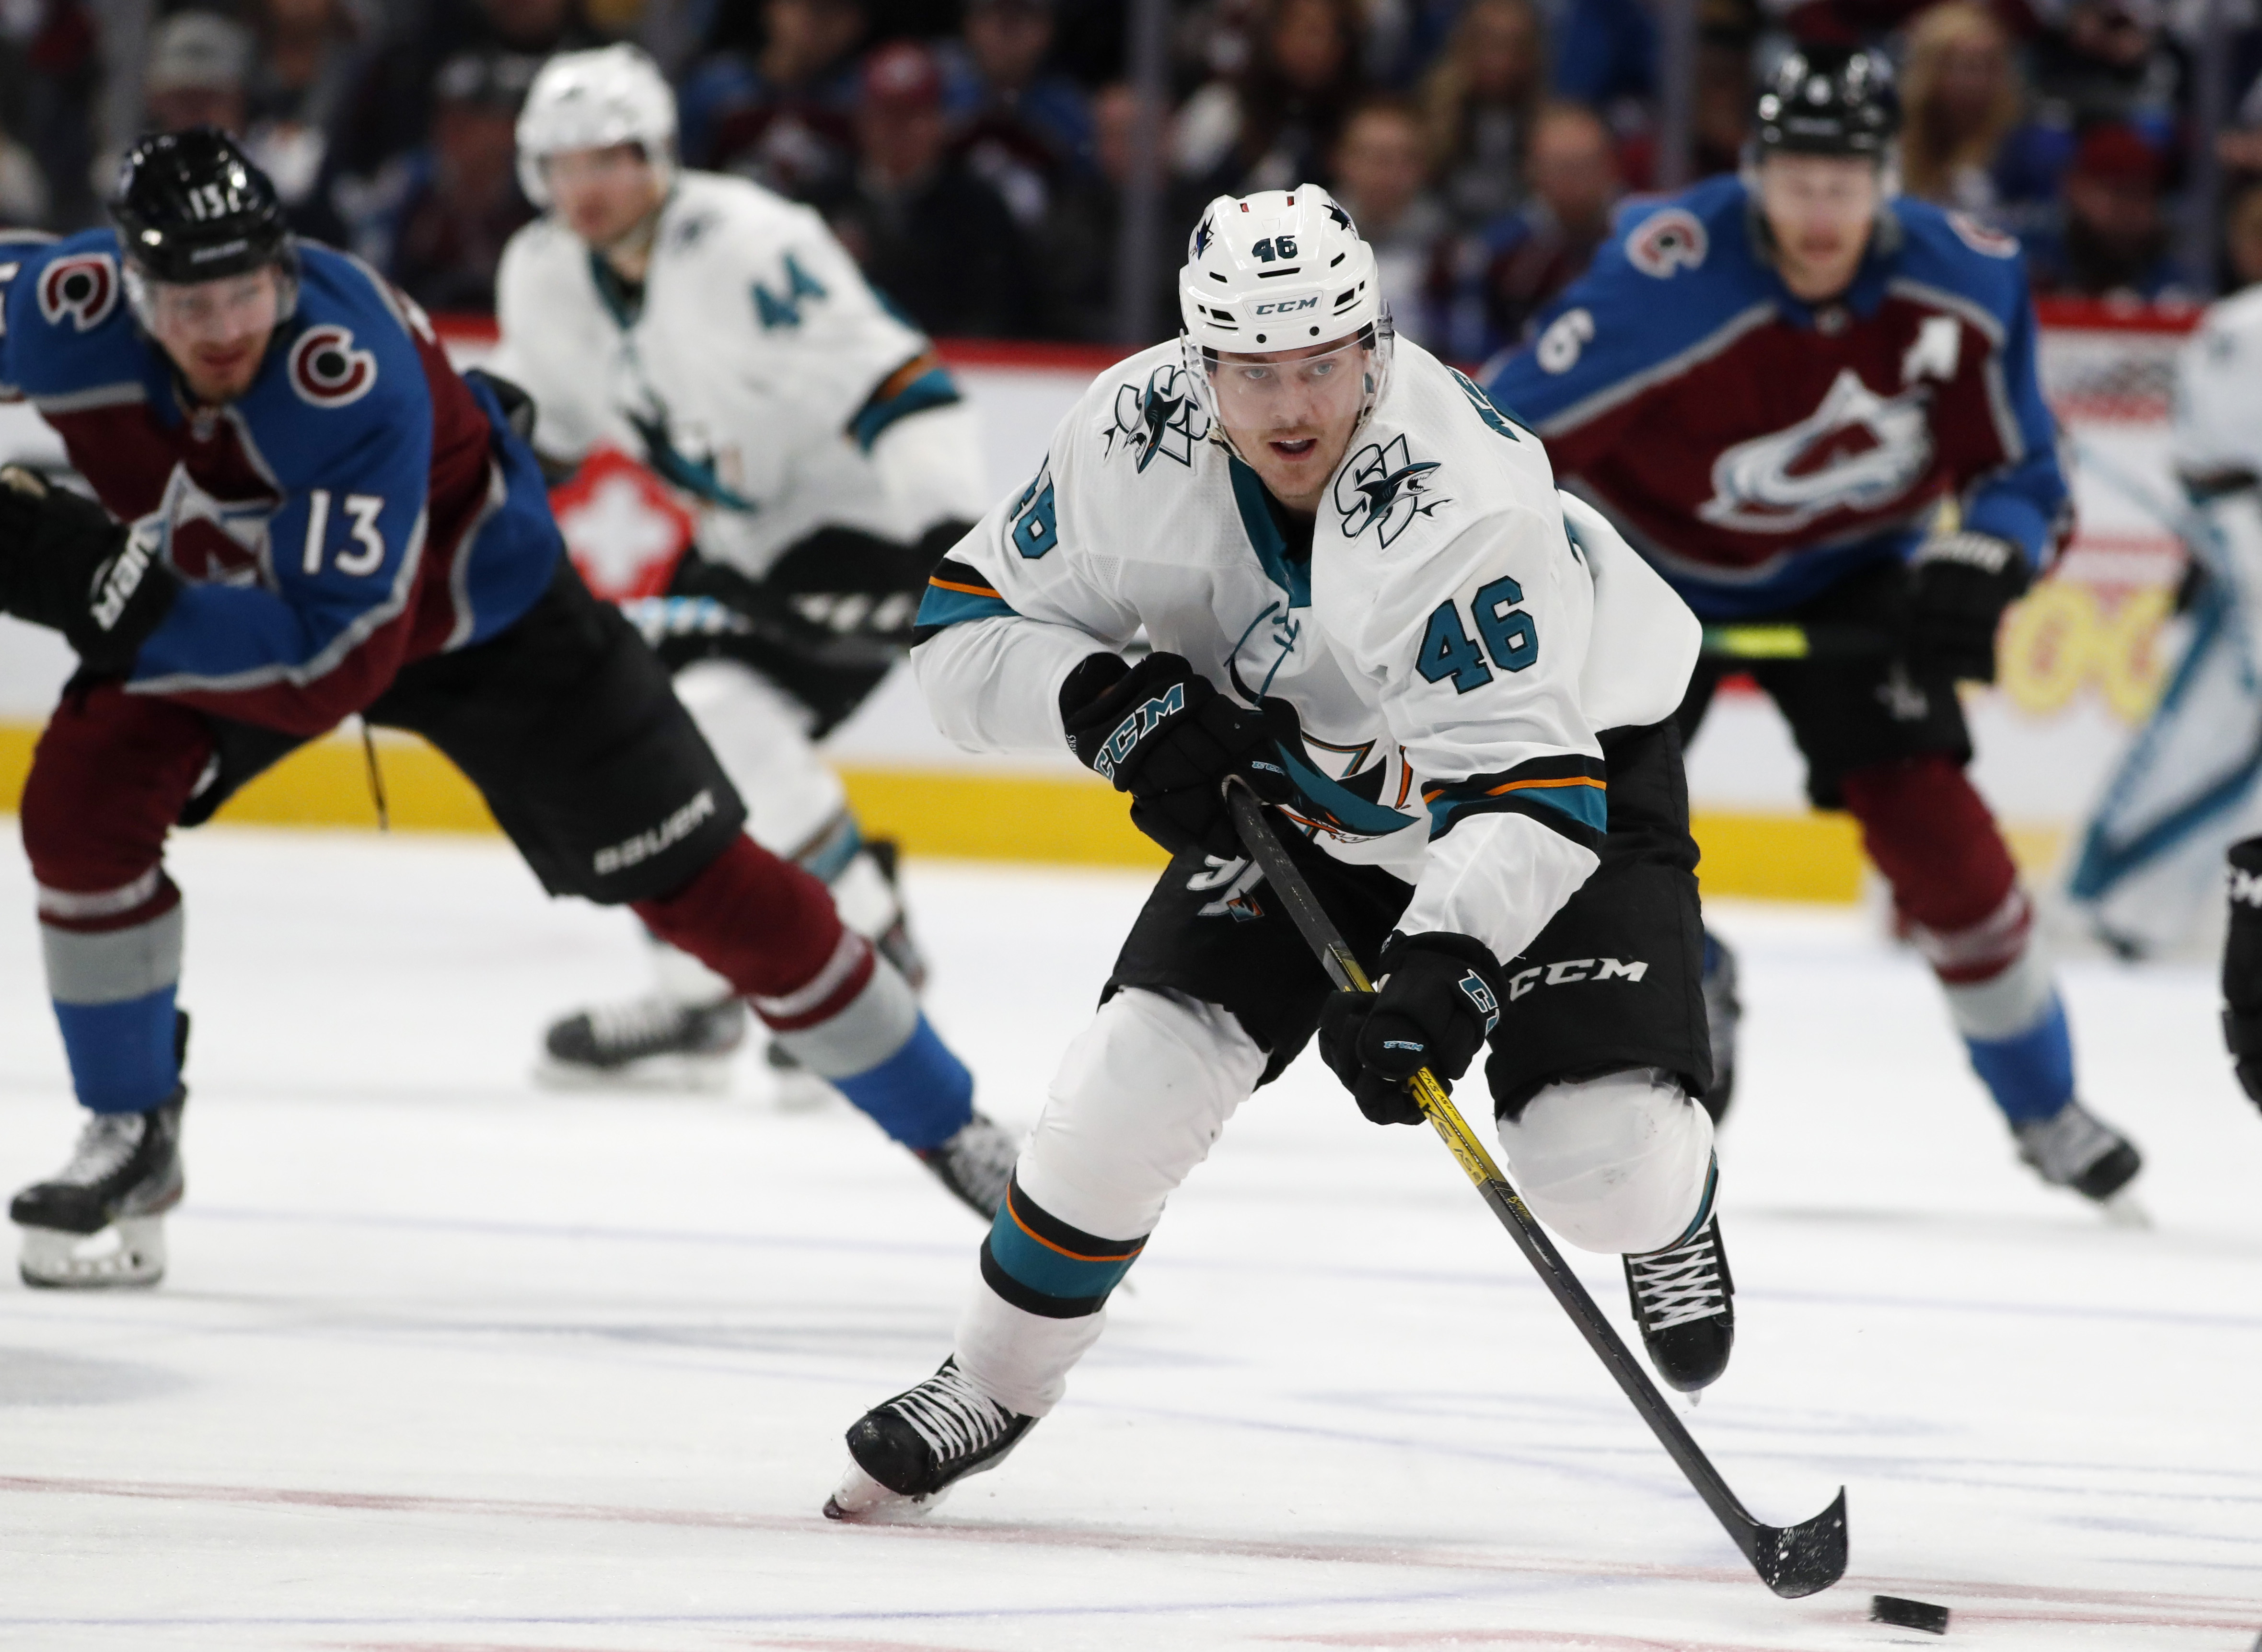 Grubauer makes 27 saves, Avalanche blank Sharks 4-0